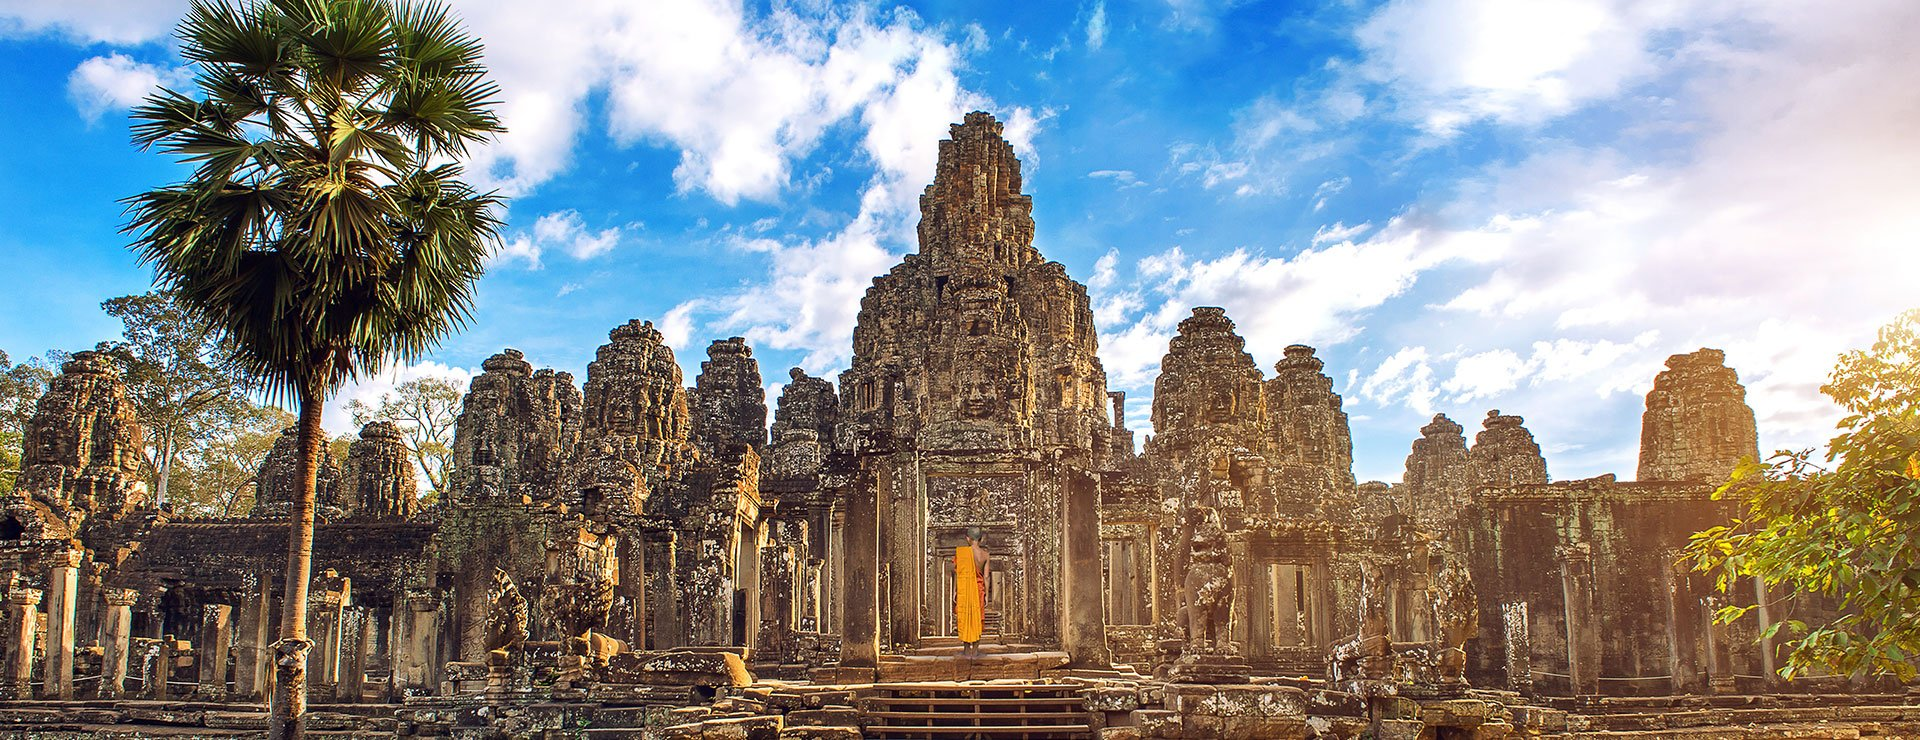 Top 4 Experiences That You Should Not Miss In Your Cambodia Trip